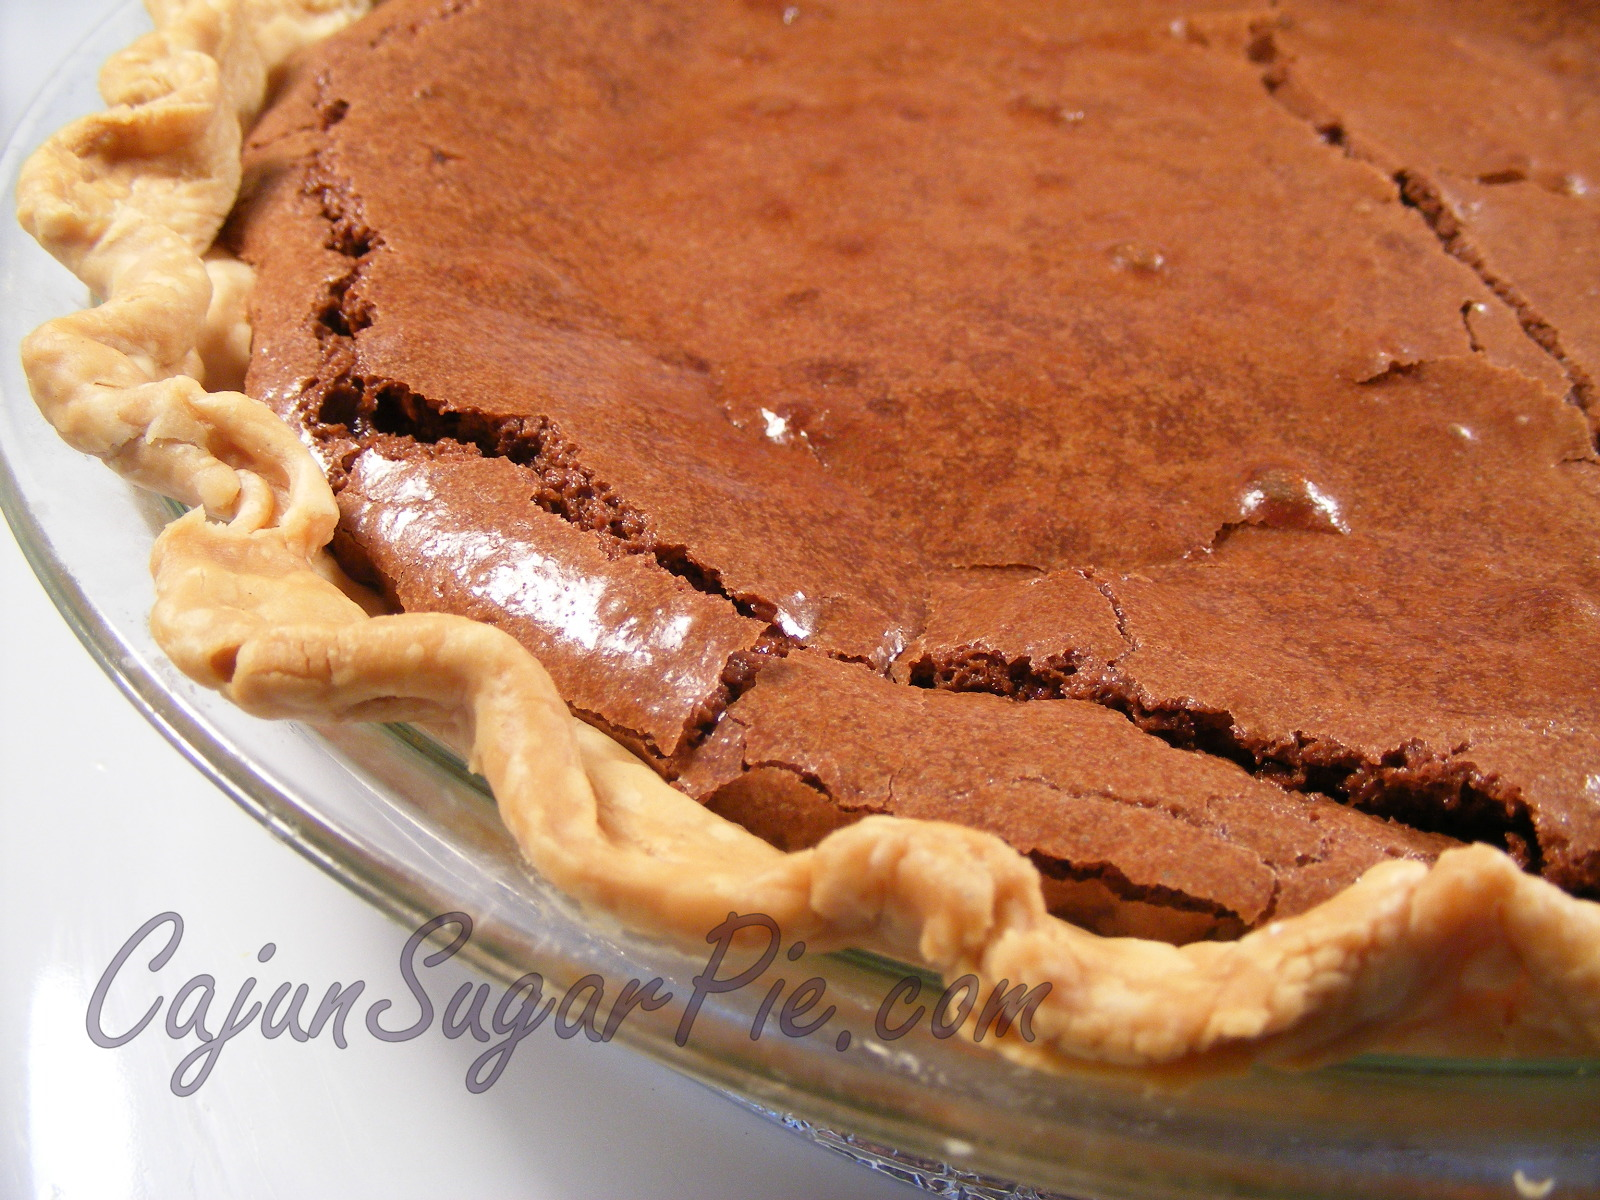 David's Delight Fudge Pie